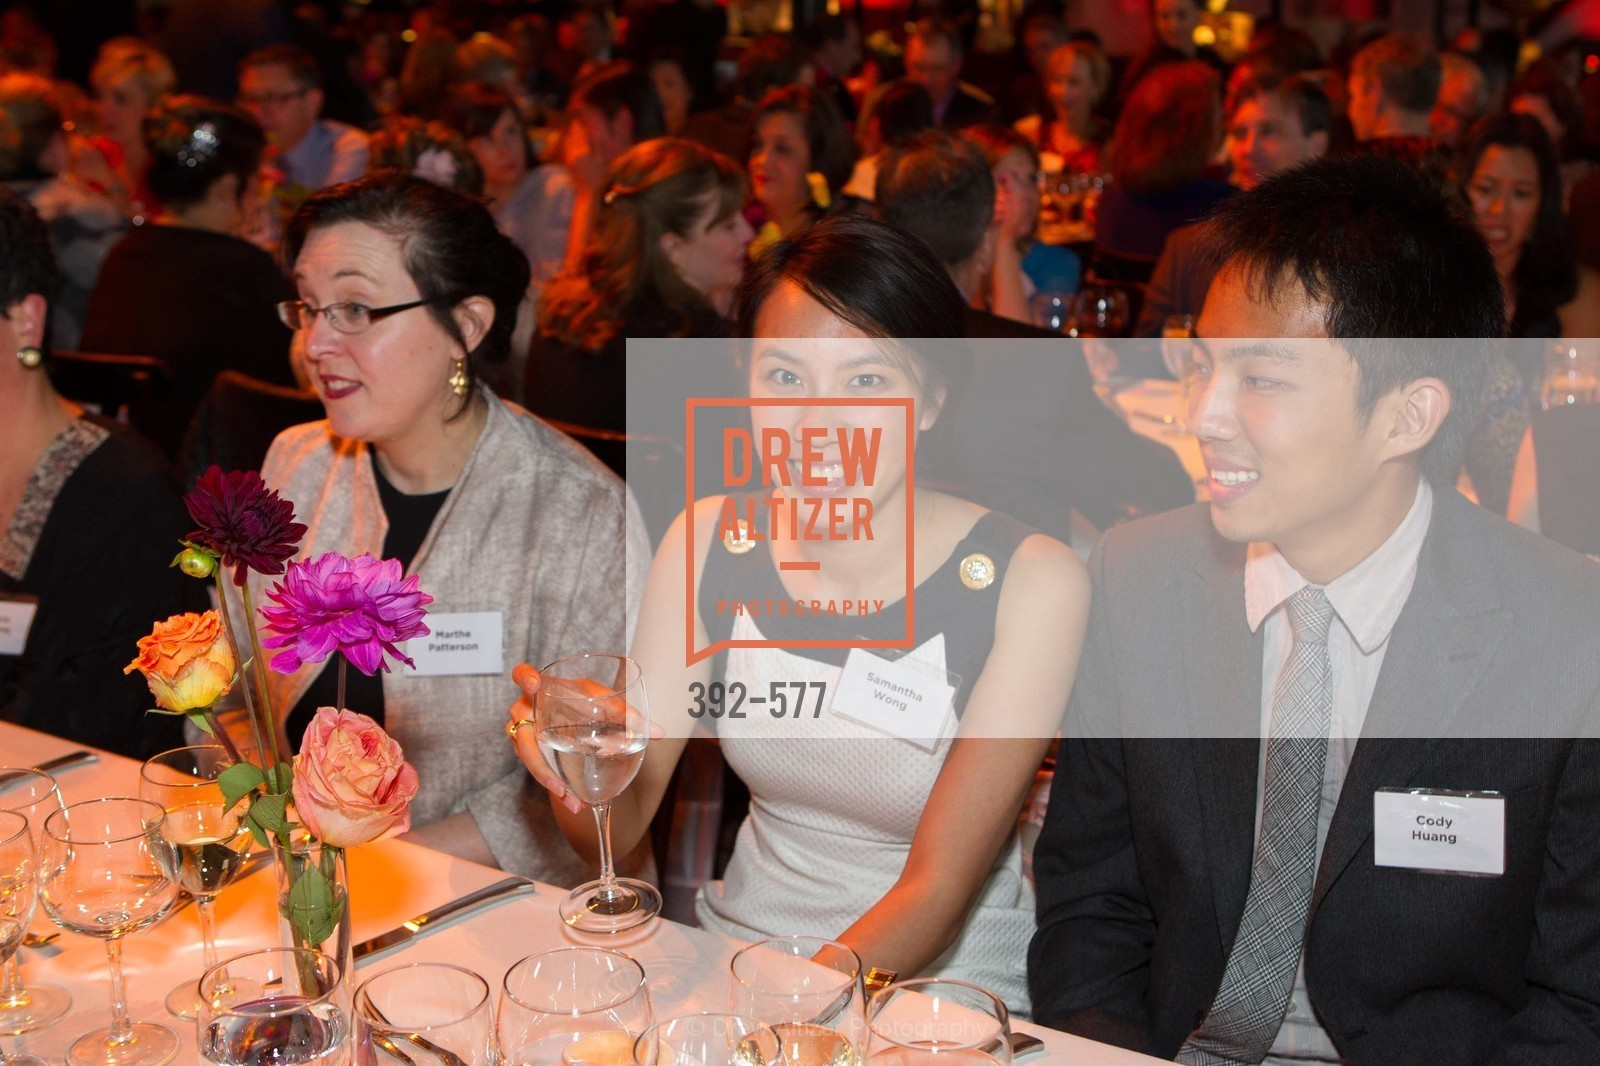 Marthe Patterson, Samantha Wong, Cody Huang, SF-MARIN FOOD BANK One Big Table Gala, US, September 27th, 2014,Drew Altizer, Drew Altizer Photography, full-service agency, private events, San Francisco photographer, photographer california